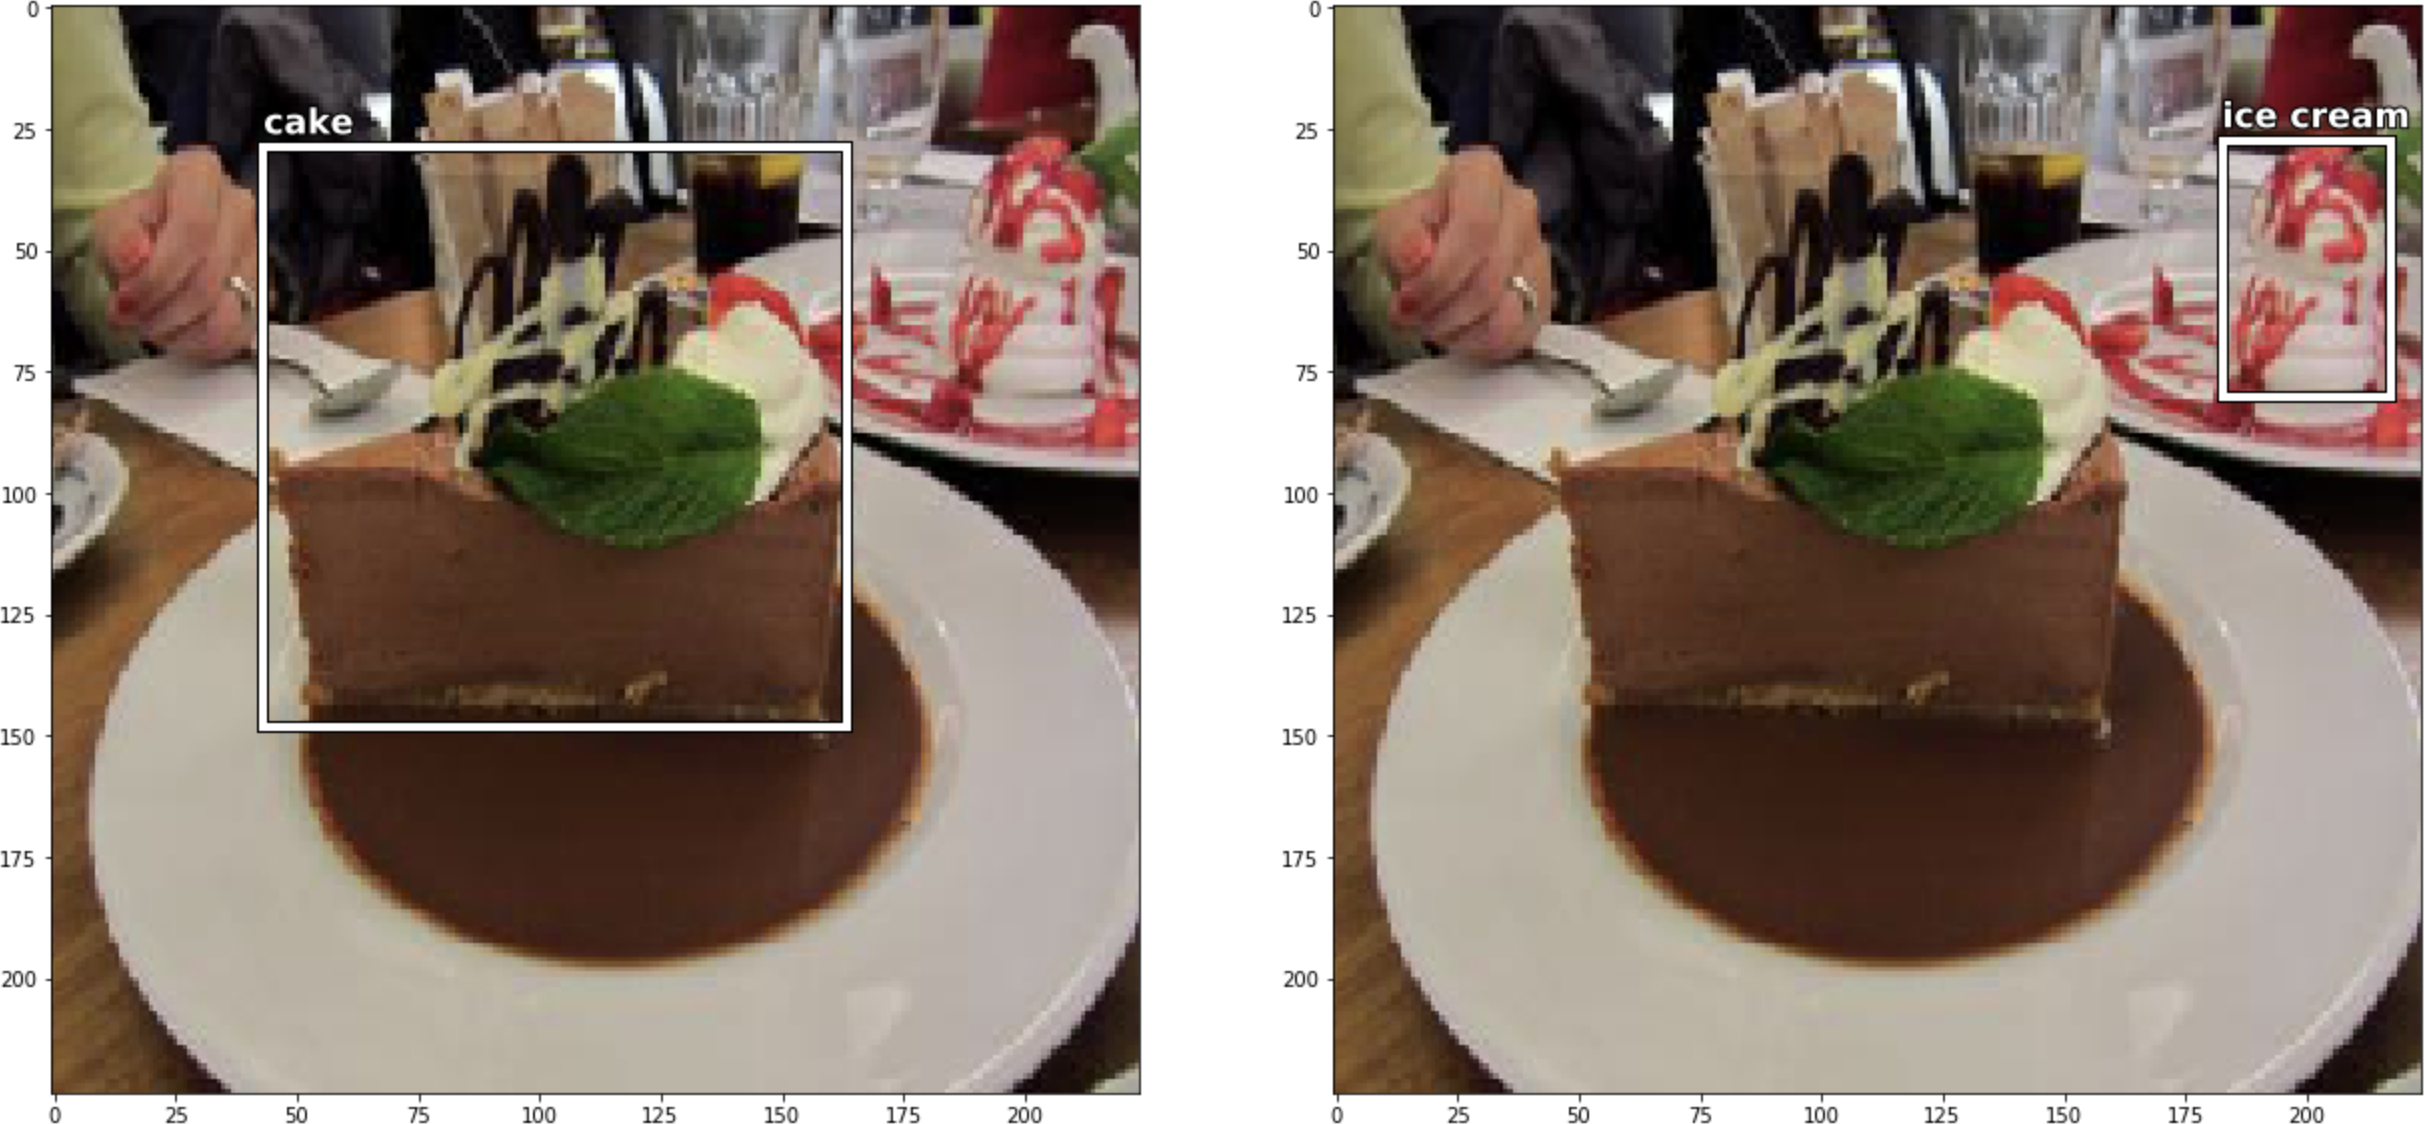 The ground-truth box for row 0, cake (left) and row 2, ice cream (right)